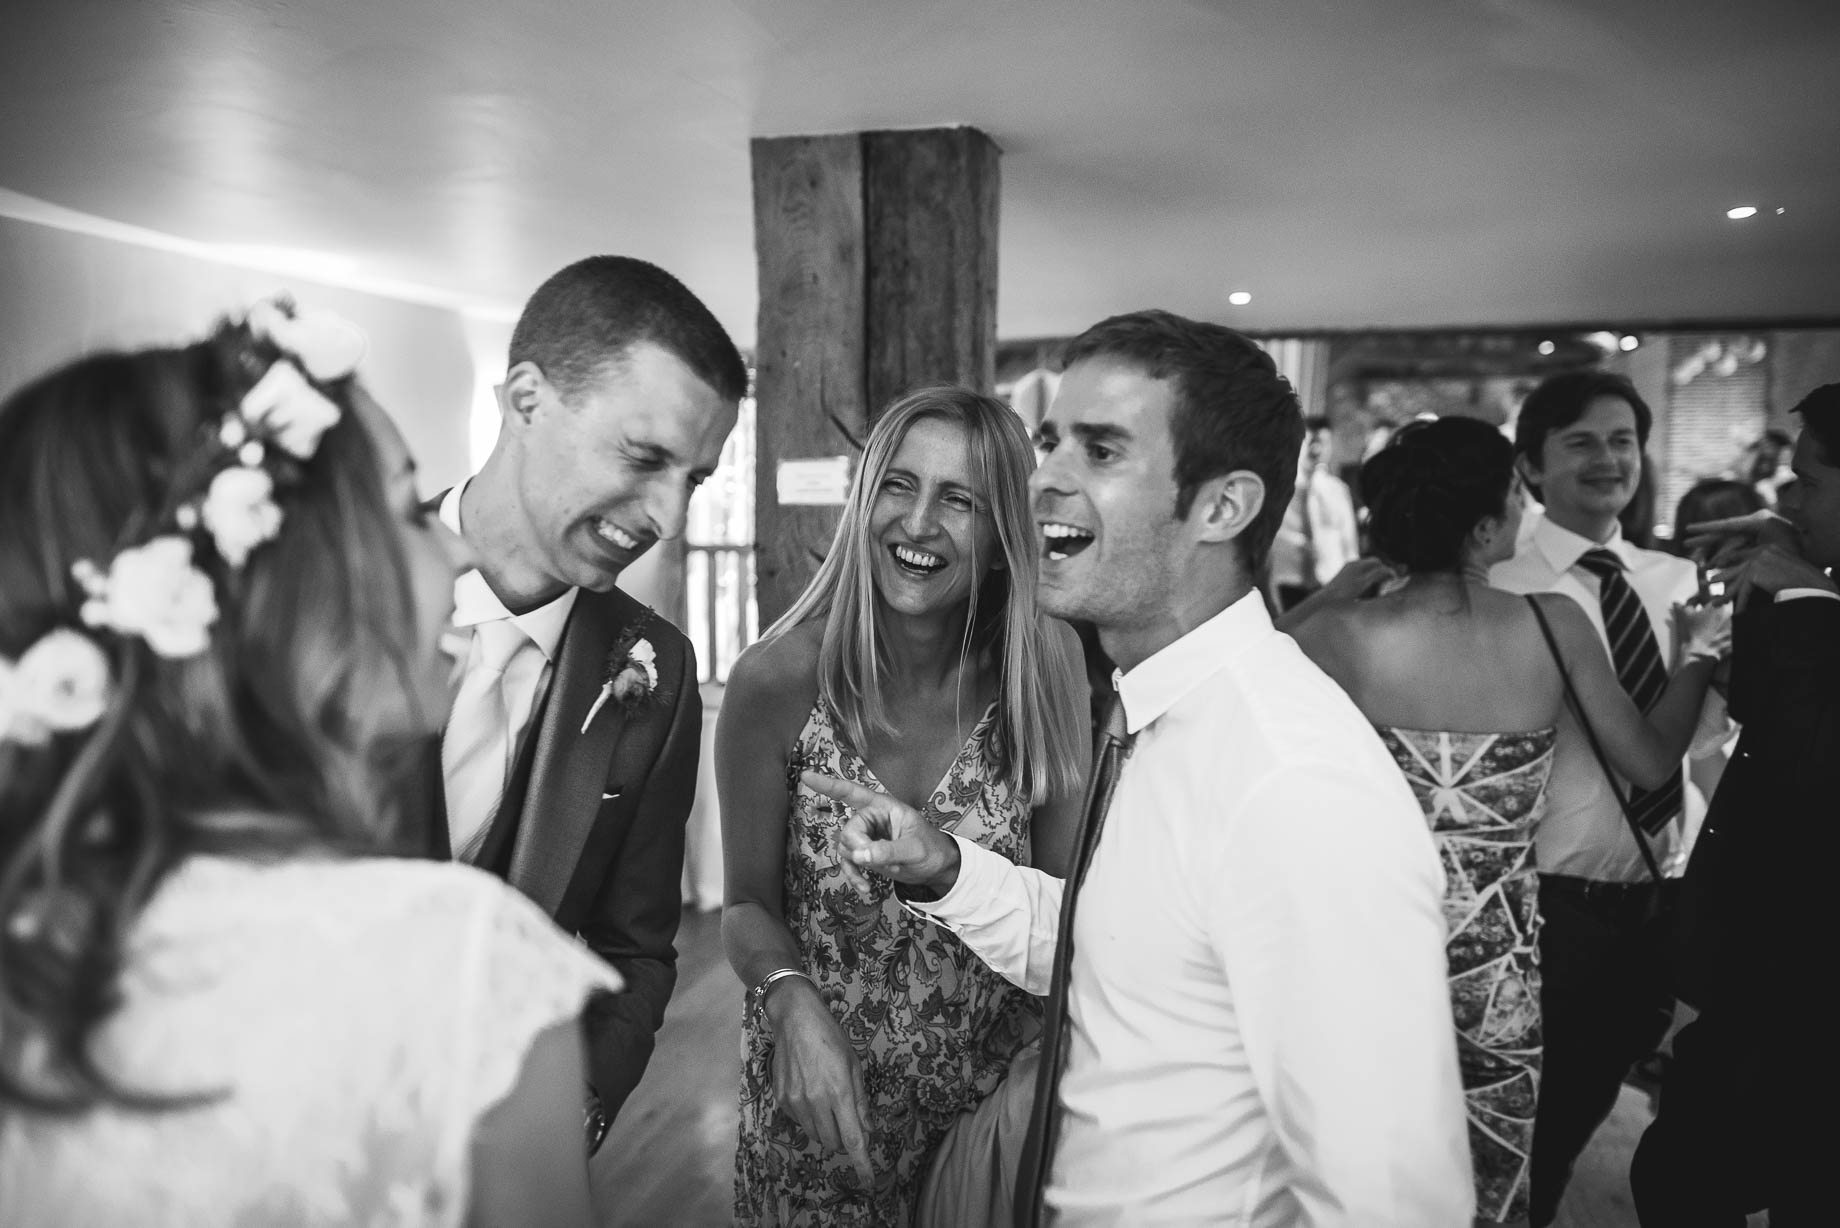 Bury Court Barn wedding photography by Guy Collier - Jo and Jamie (159 of 160)